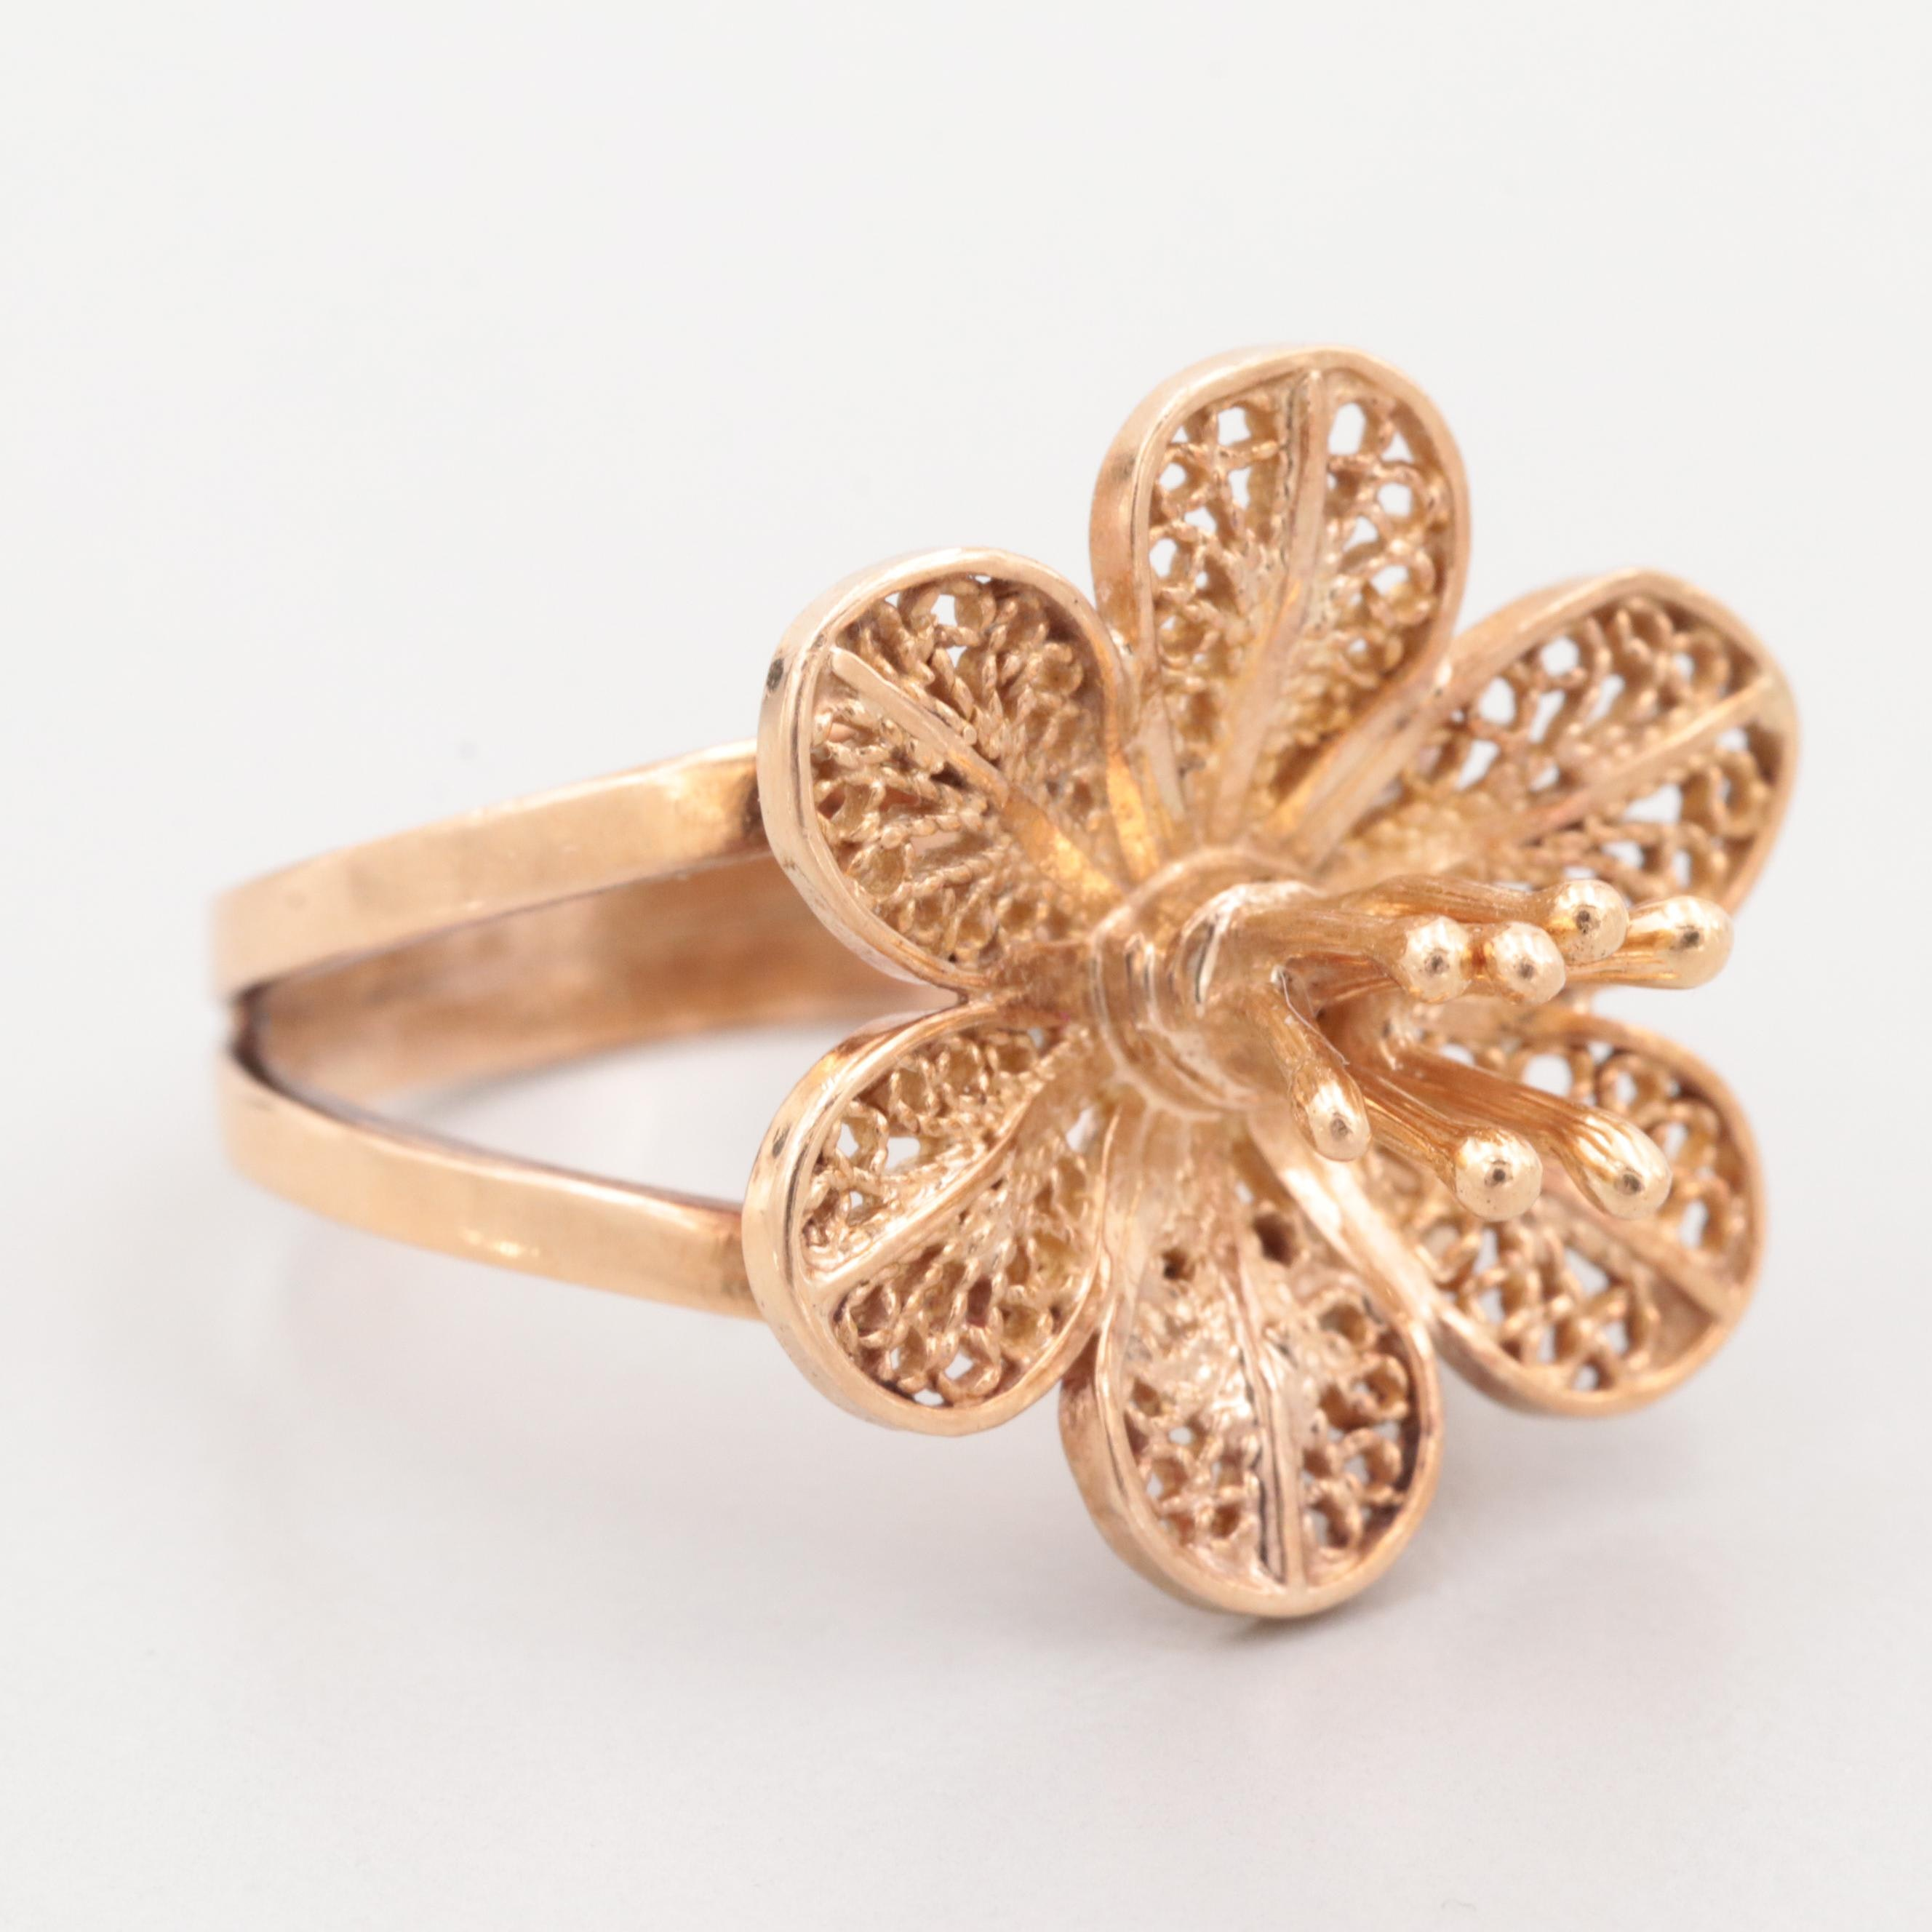 18K Yellow Gold Floral Filigree Ring